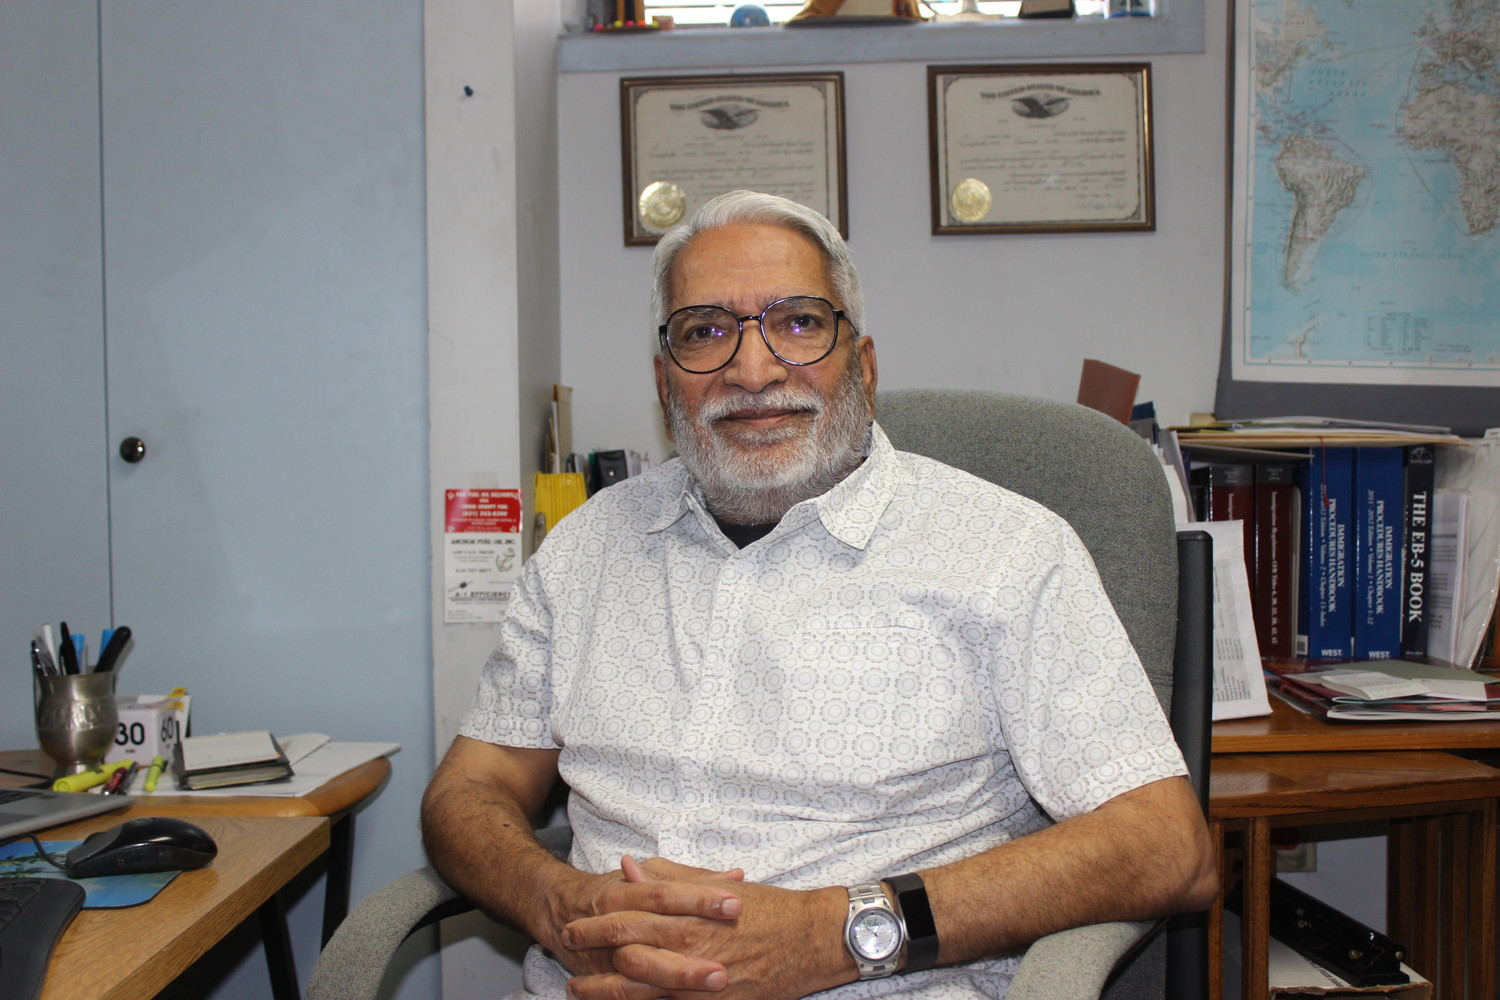 Pravinchandra Patel, 80, of East Meadow, immigrated to the United States from Gujarat, India, in 1970. Seven years later, he began studying immigration law to help others succeed in the U.S. He has written several books on the subject, including a series, Patel's Immigration Law Library.